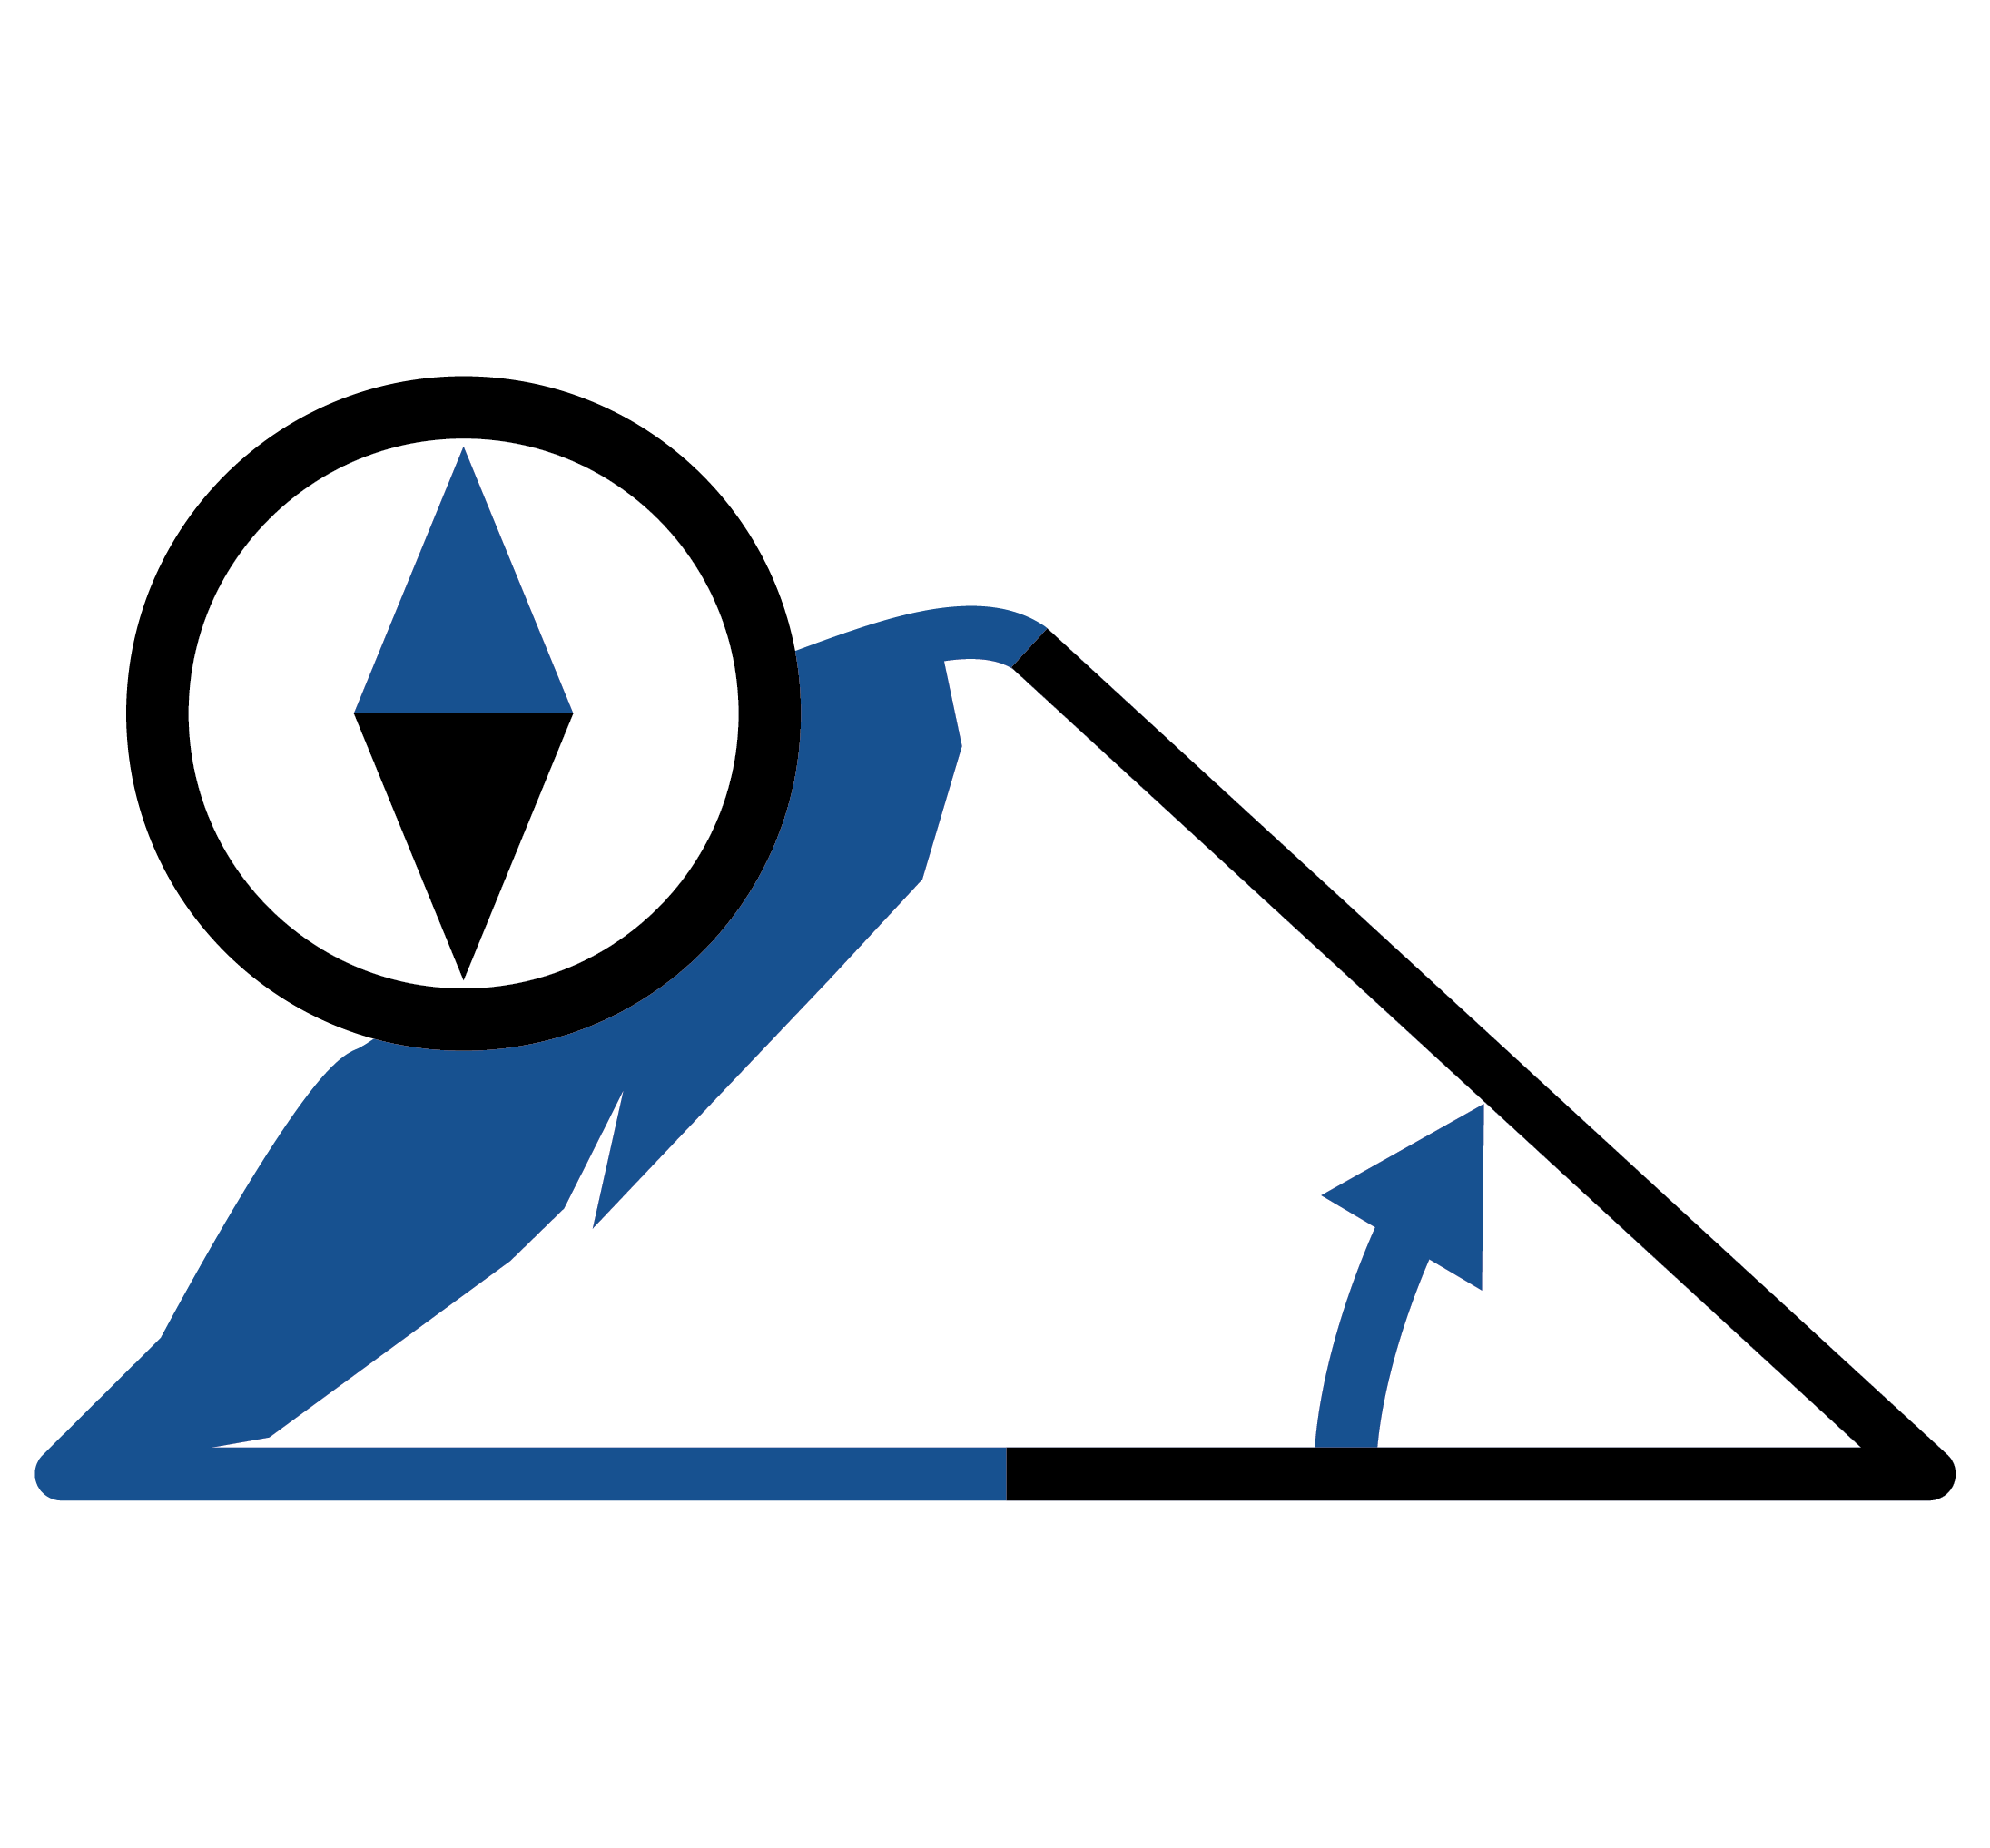 slope-and-aspect.png